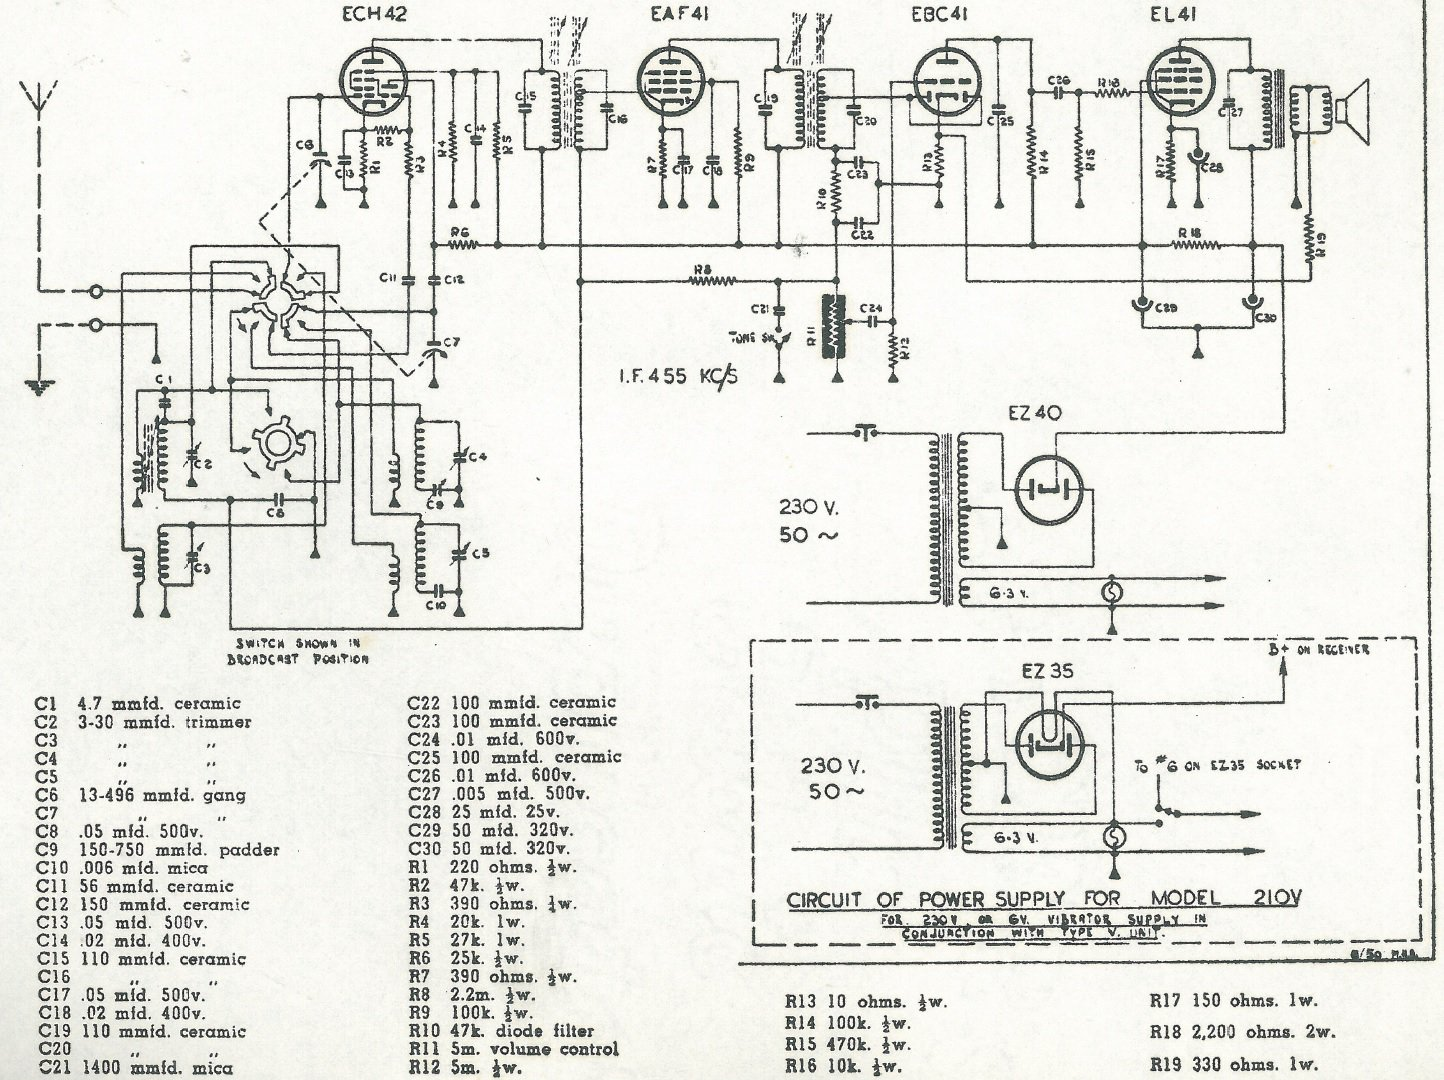 1950 Philips NZ model 210 and 210V Schematic